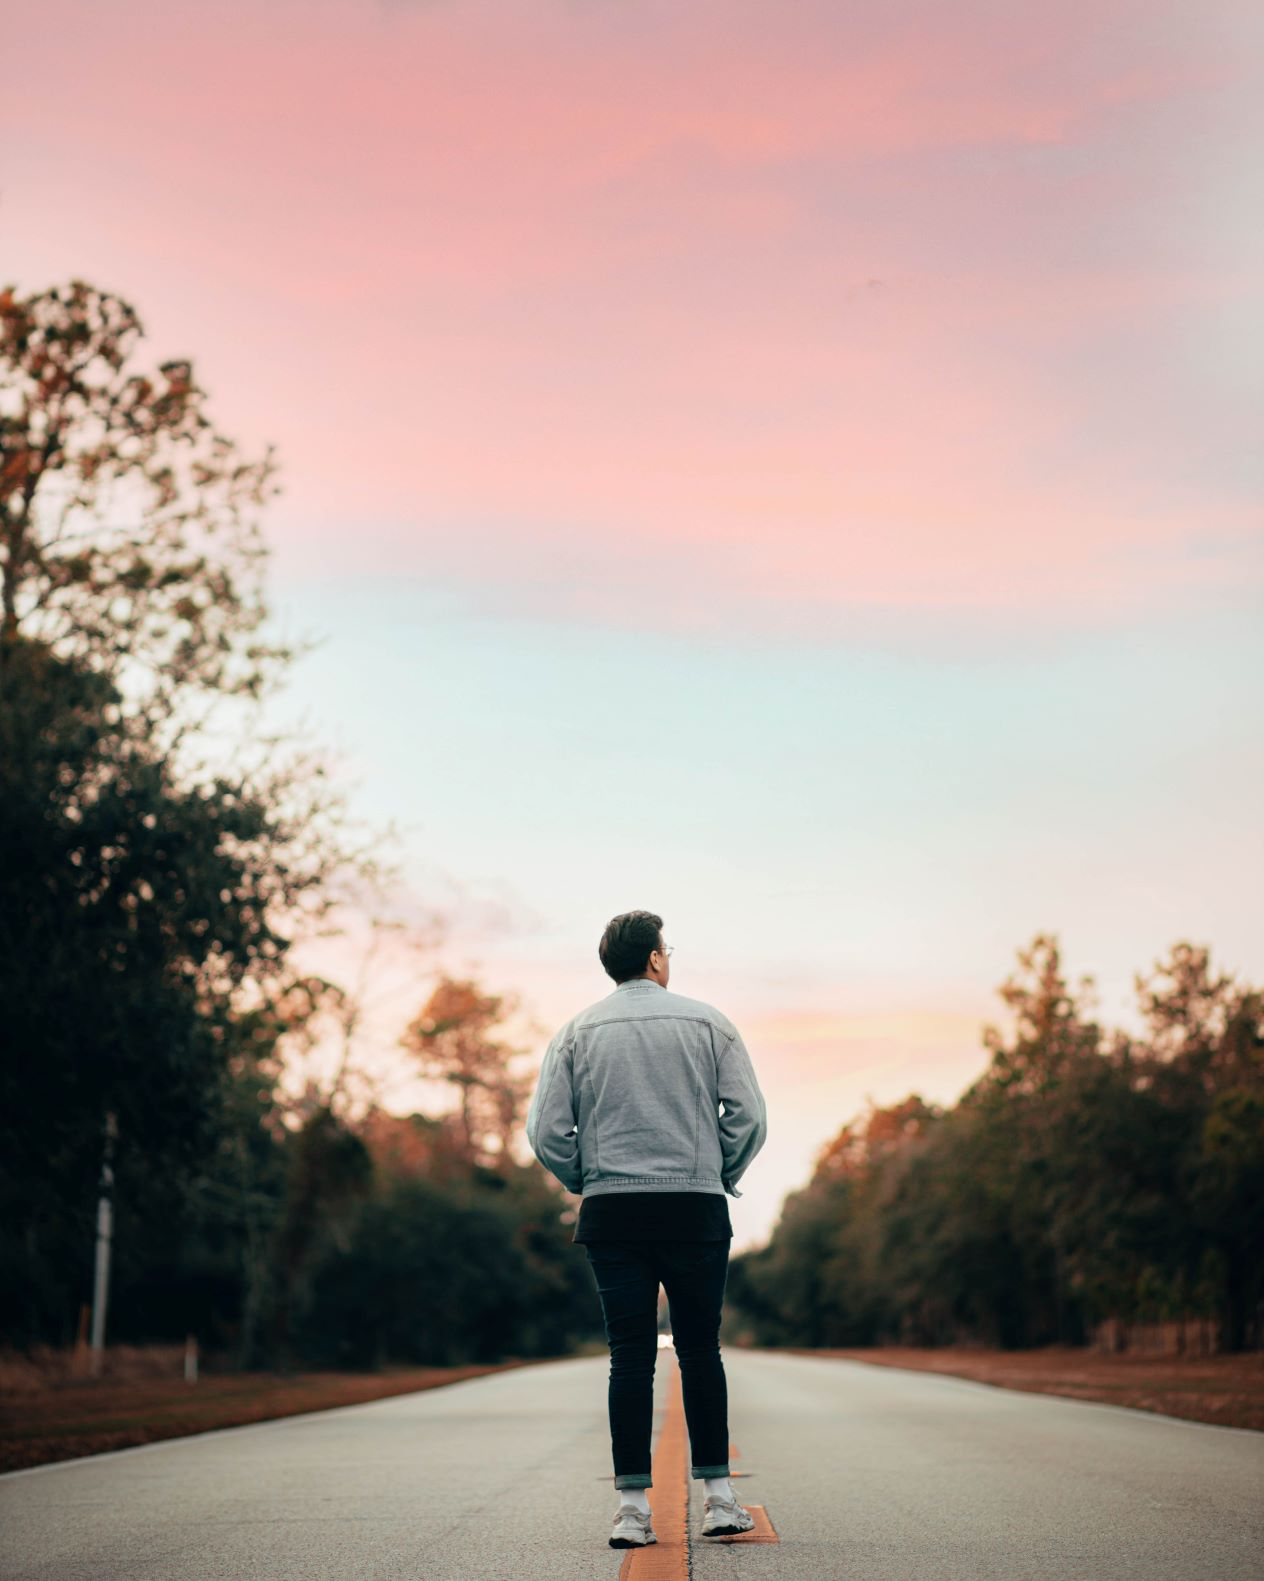 the back on a person standing on a road looking at a pink sky